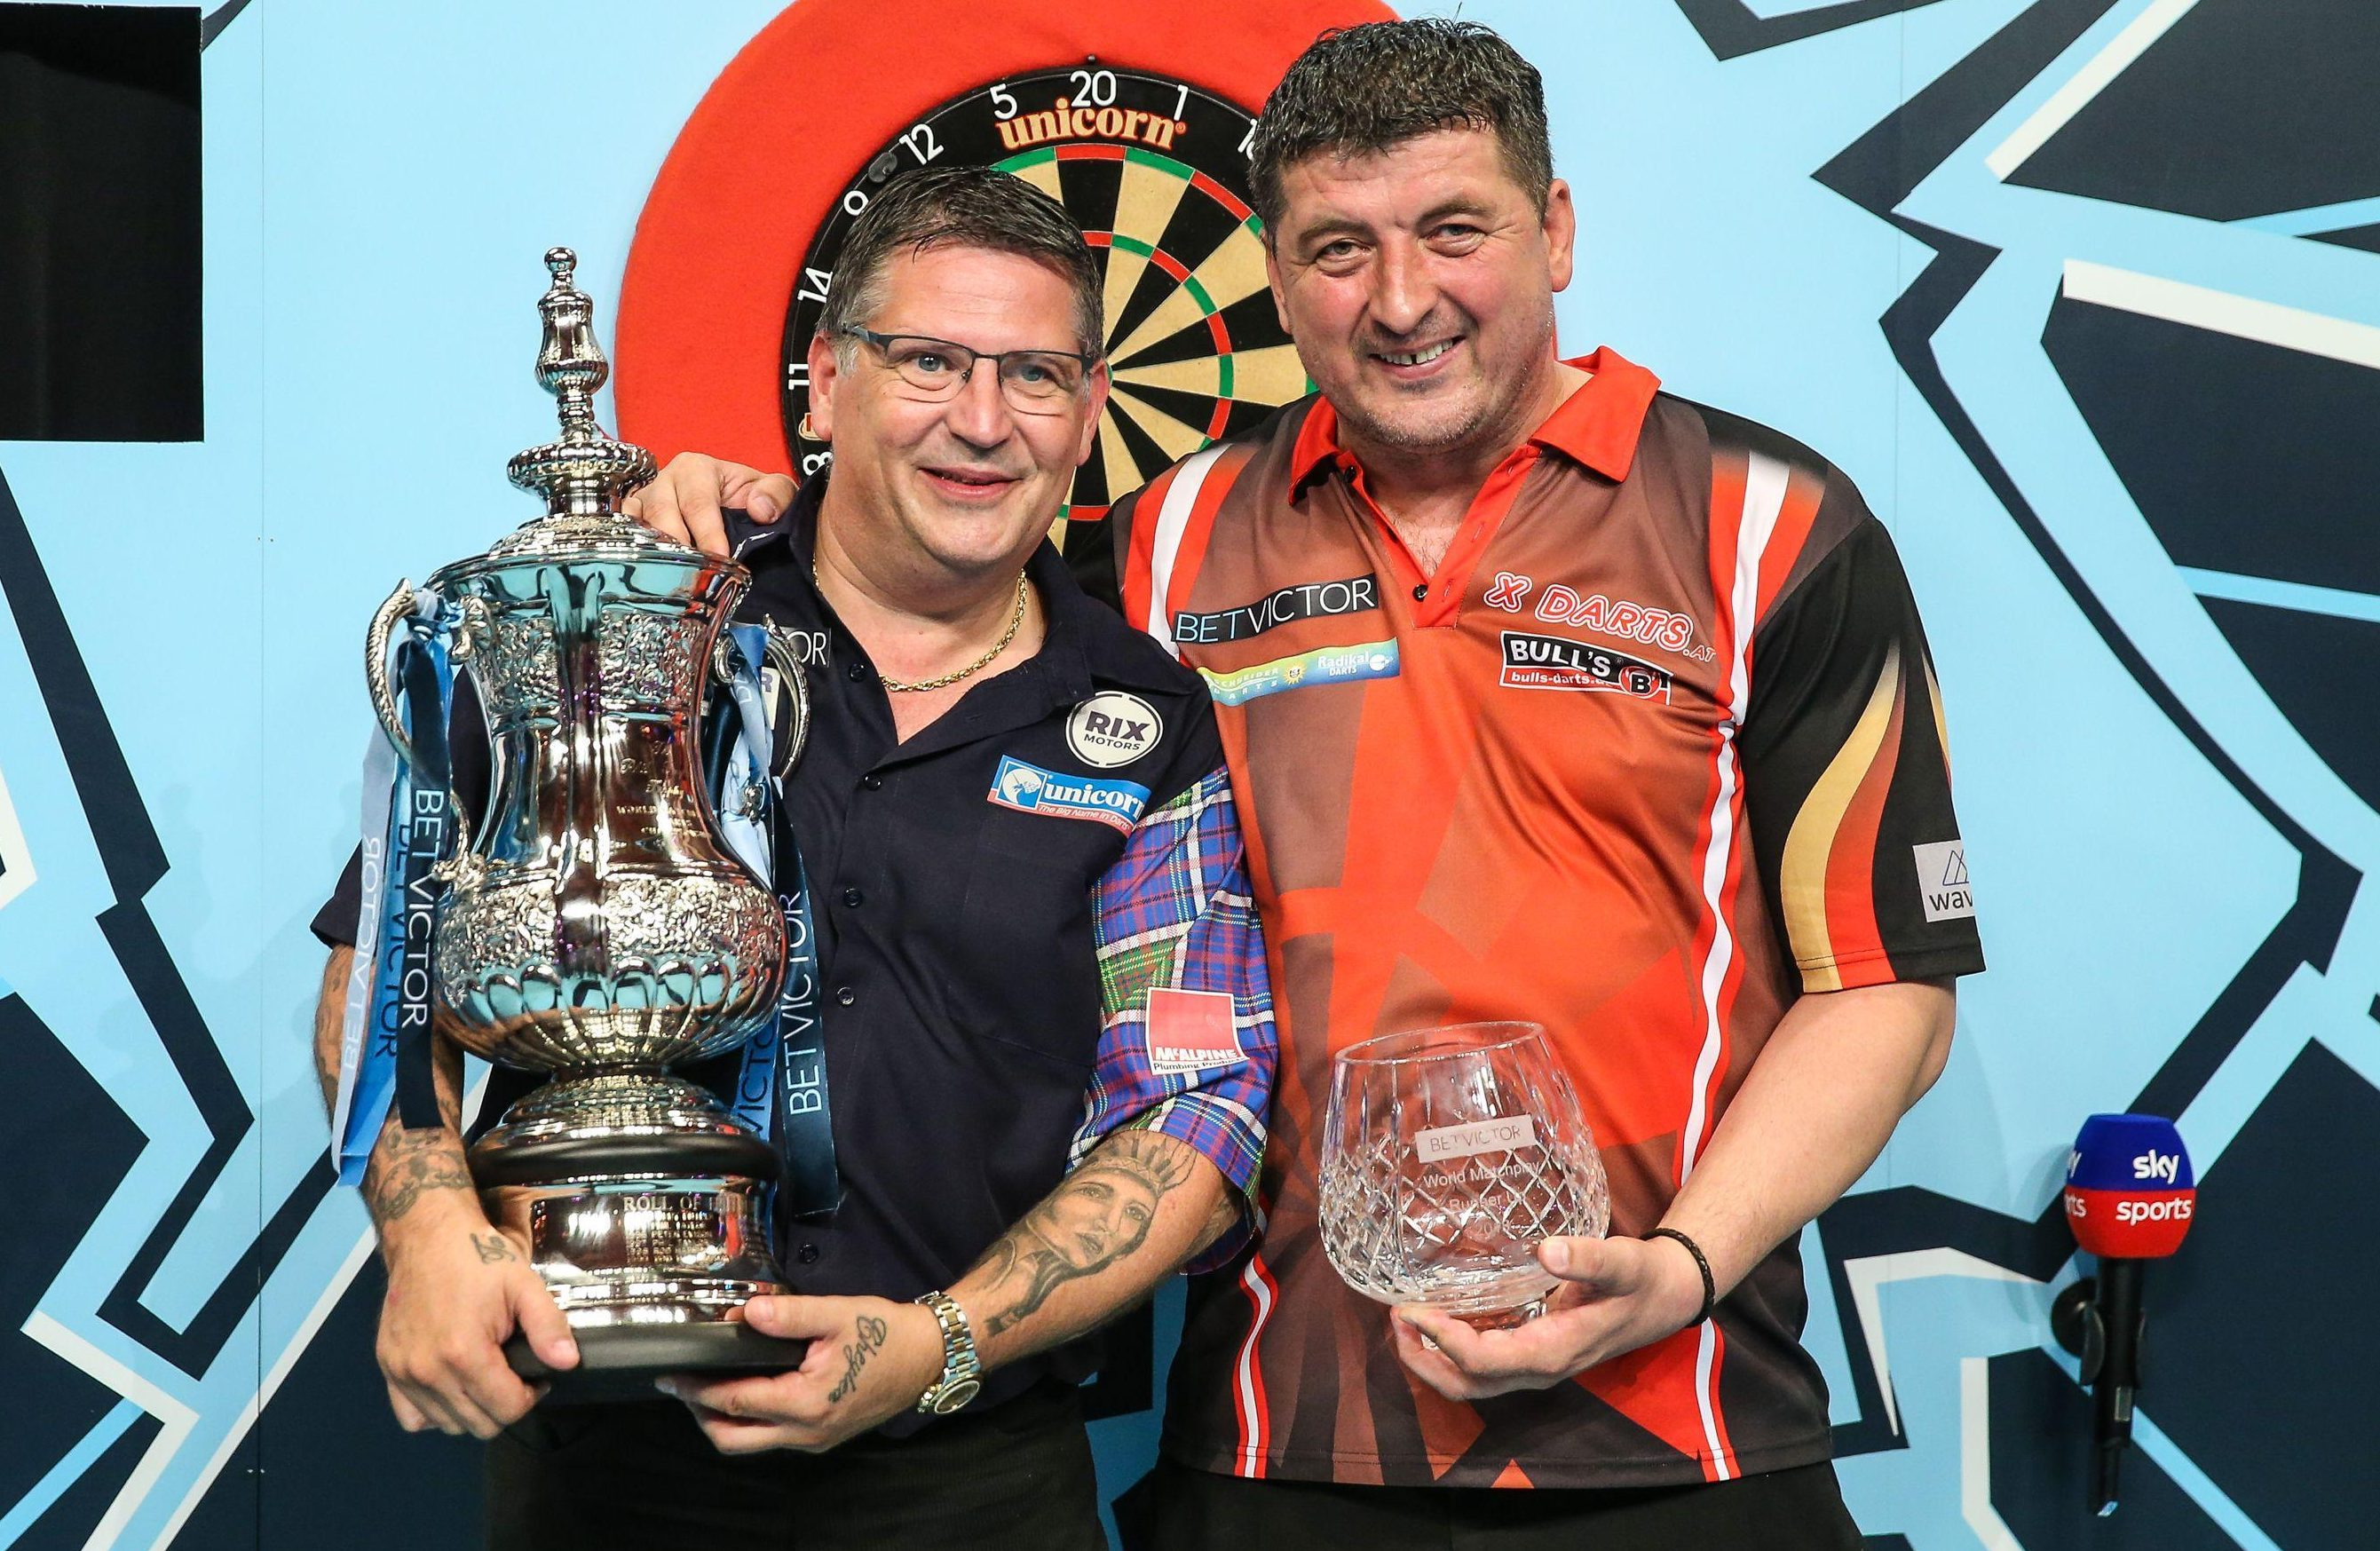 Anderson beat Mensur Suljovic 21-19 in a tense final in Blackpool